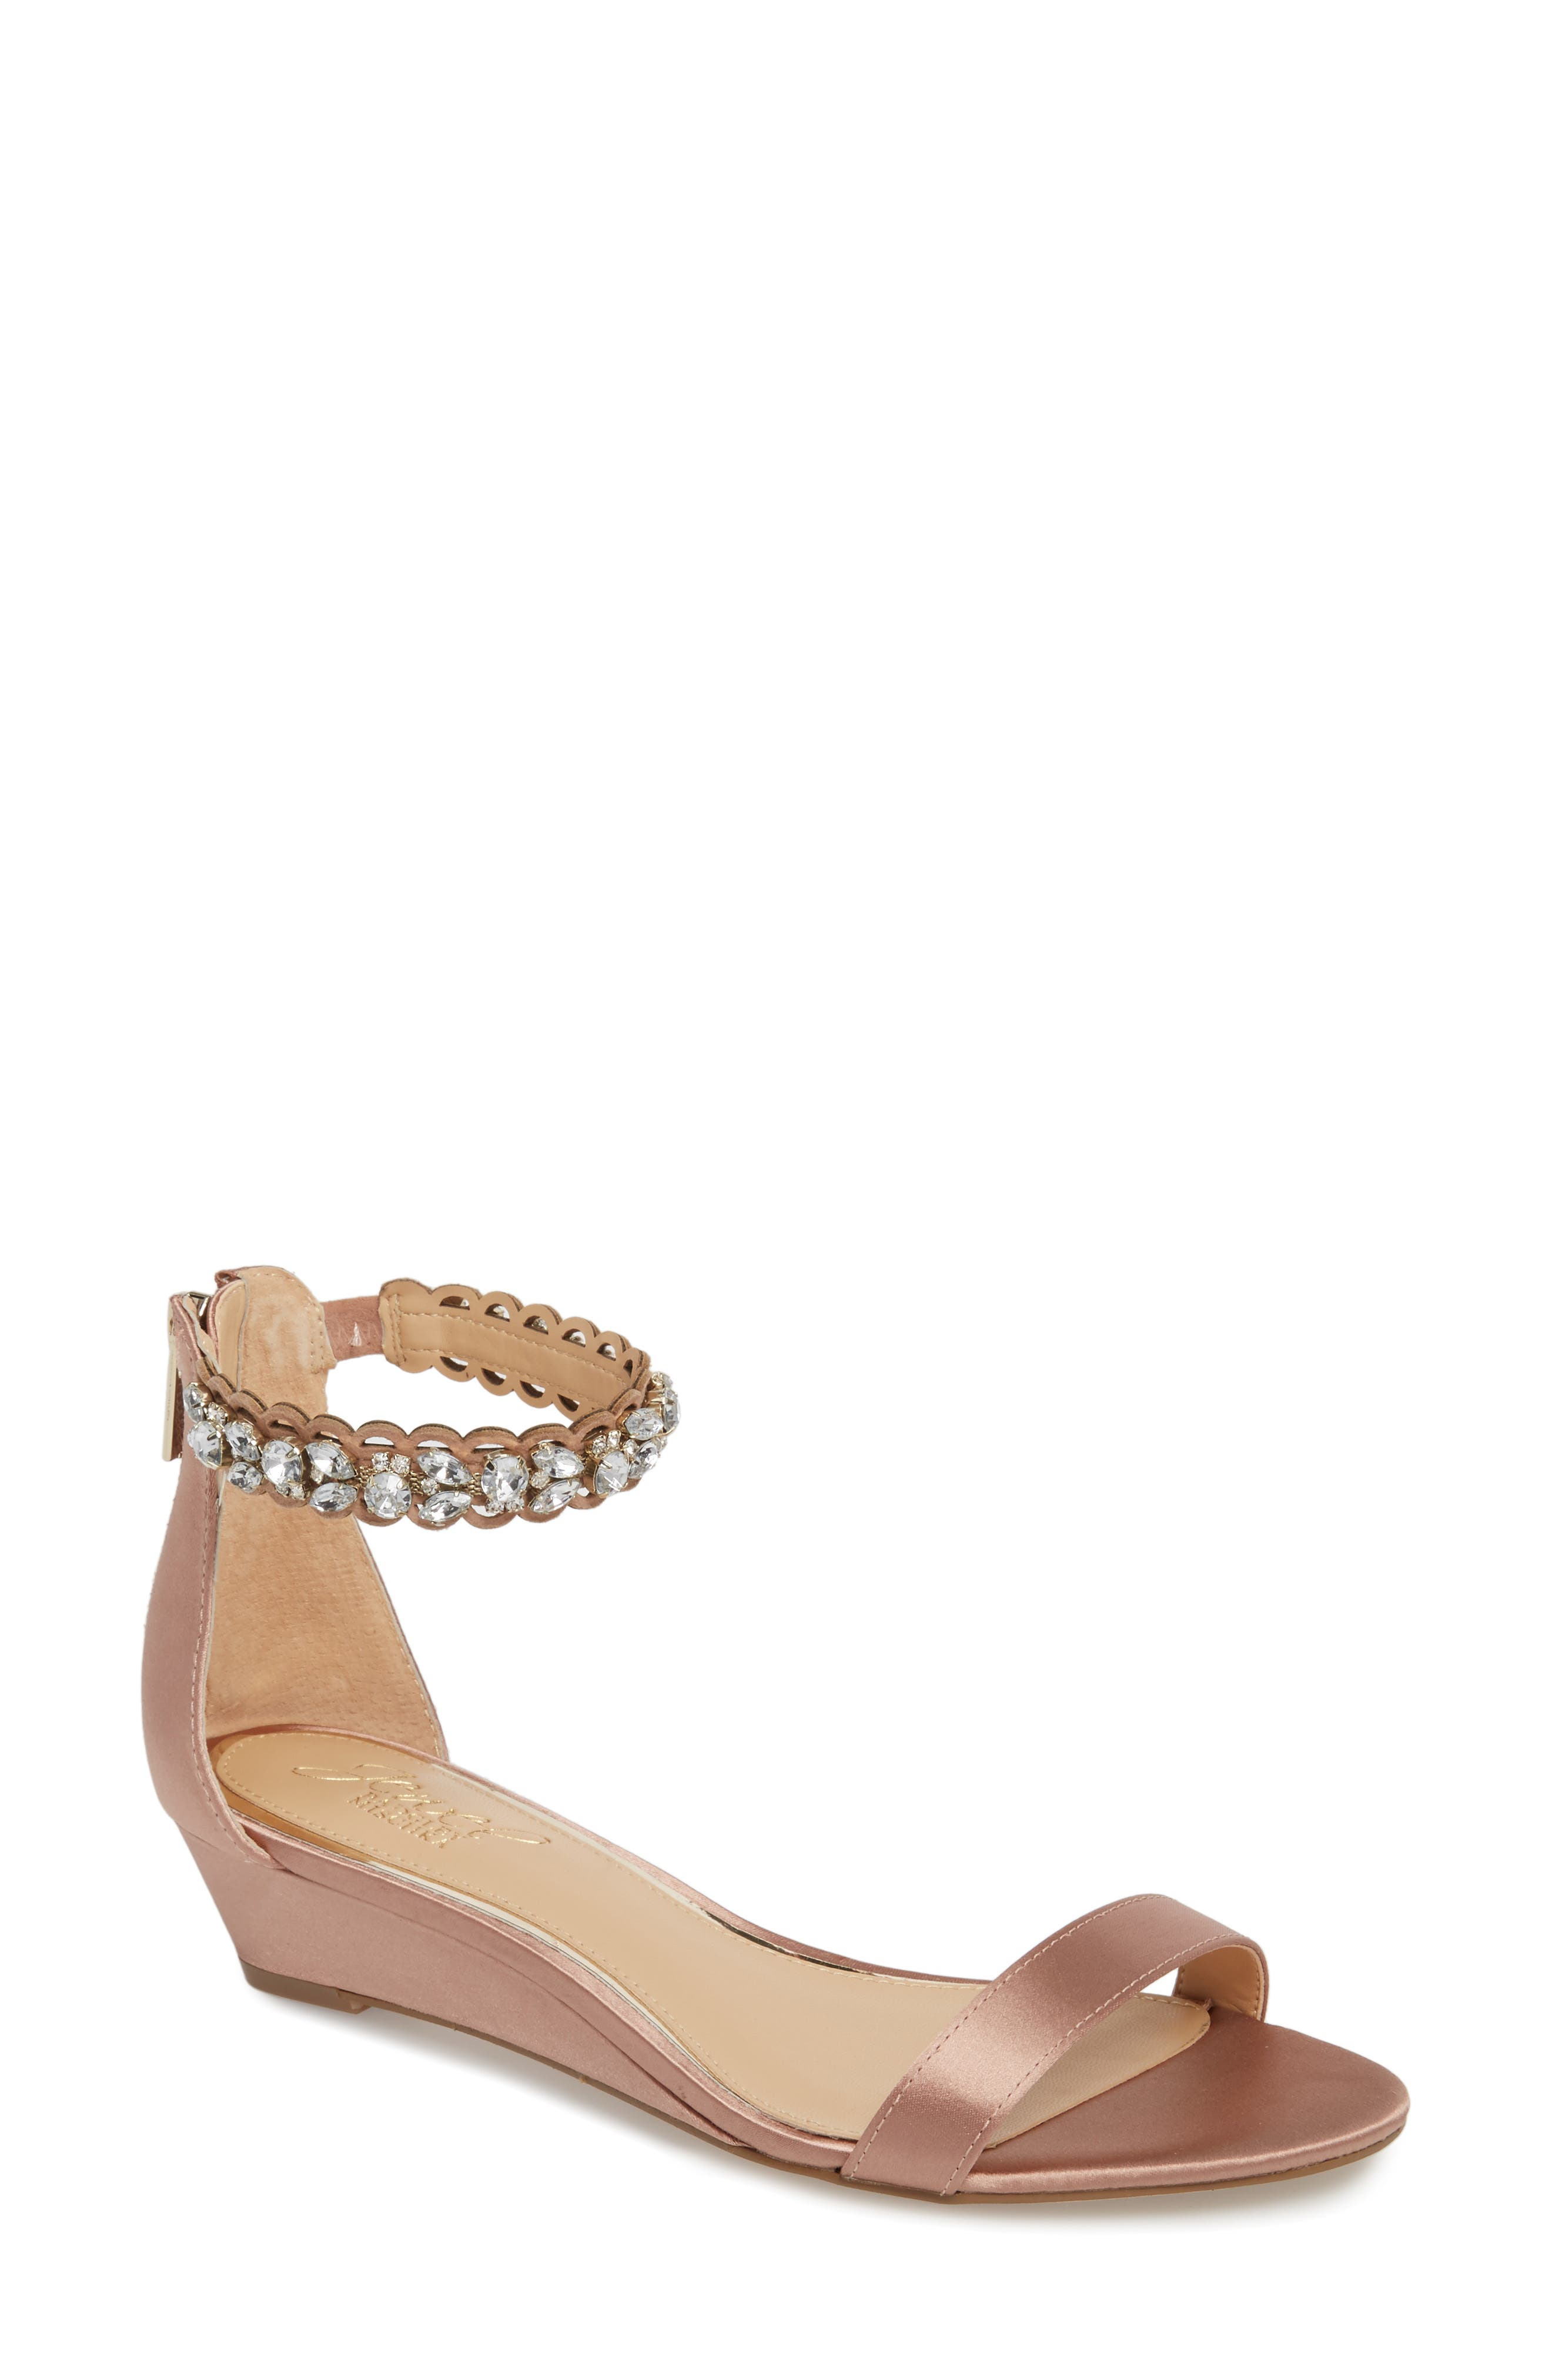 Ginger Wedge Sandal,                             Main thumbnail 1, color,                             Dark Blush